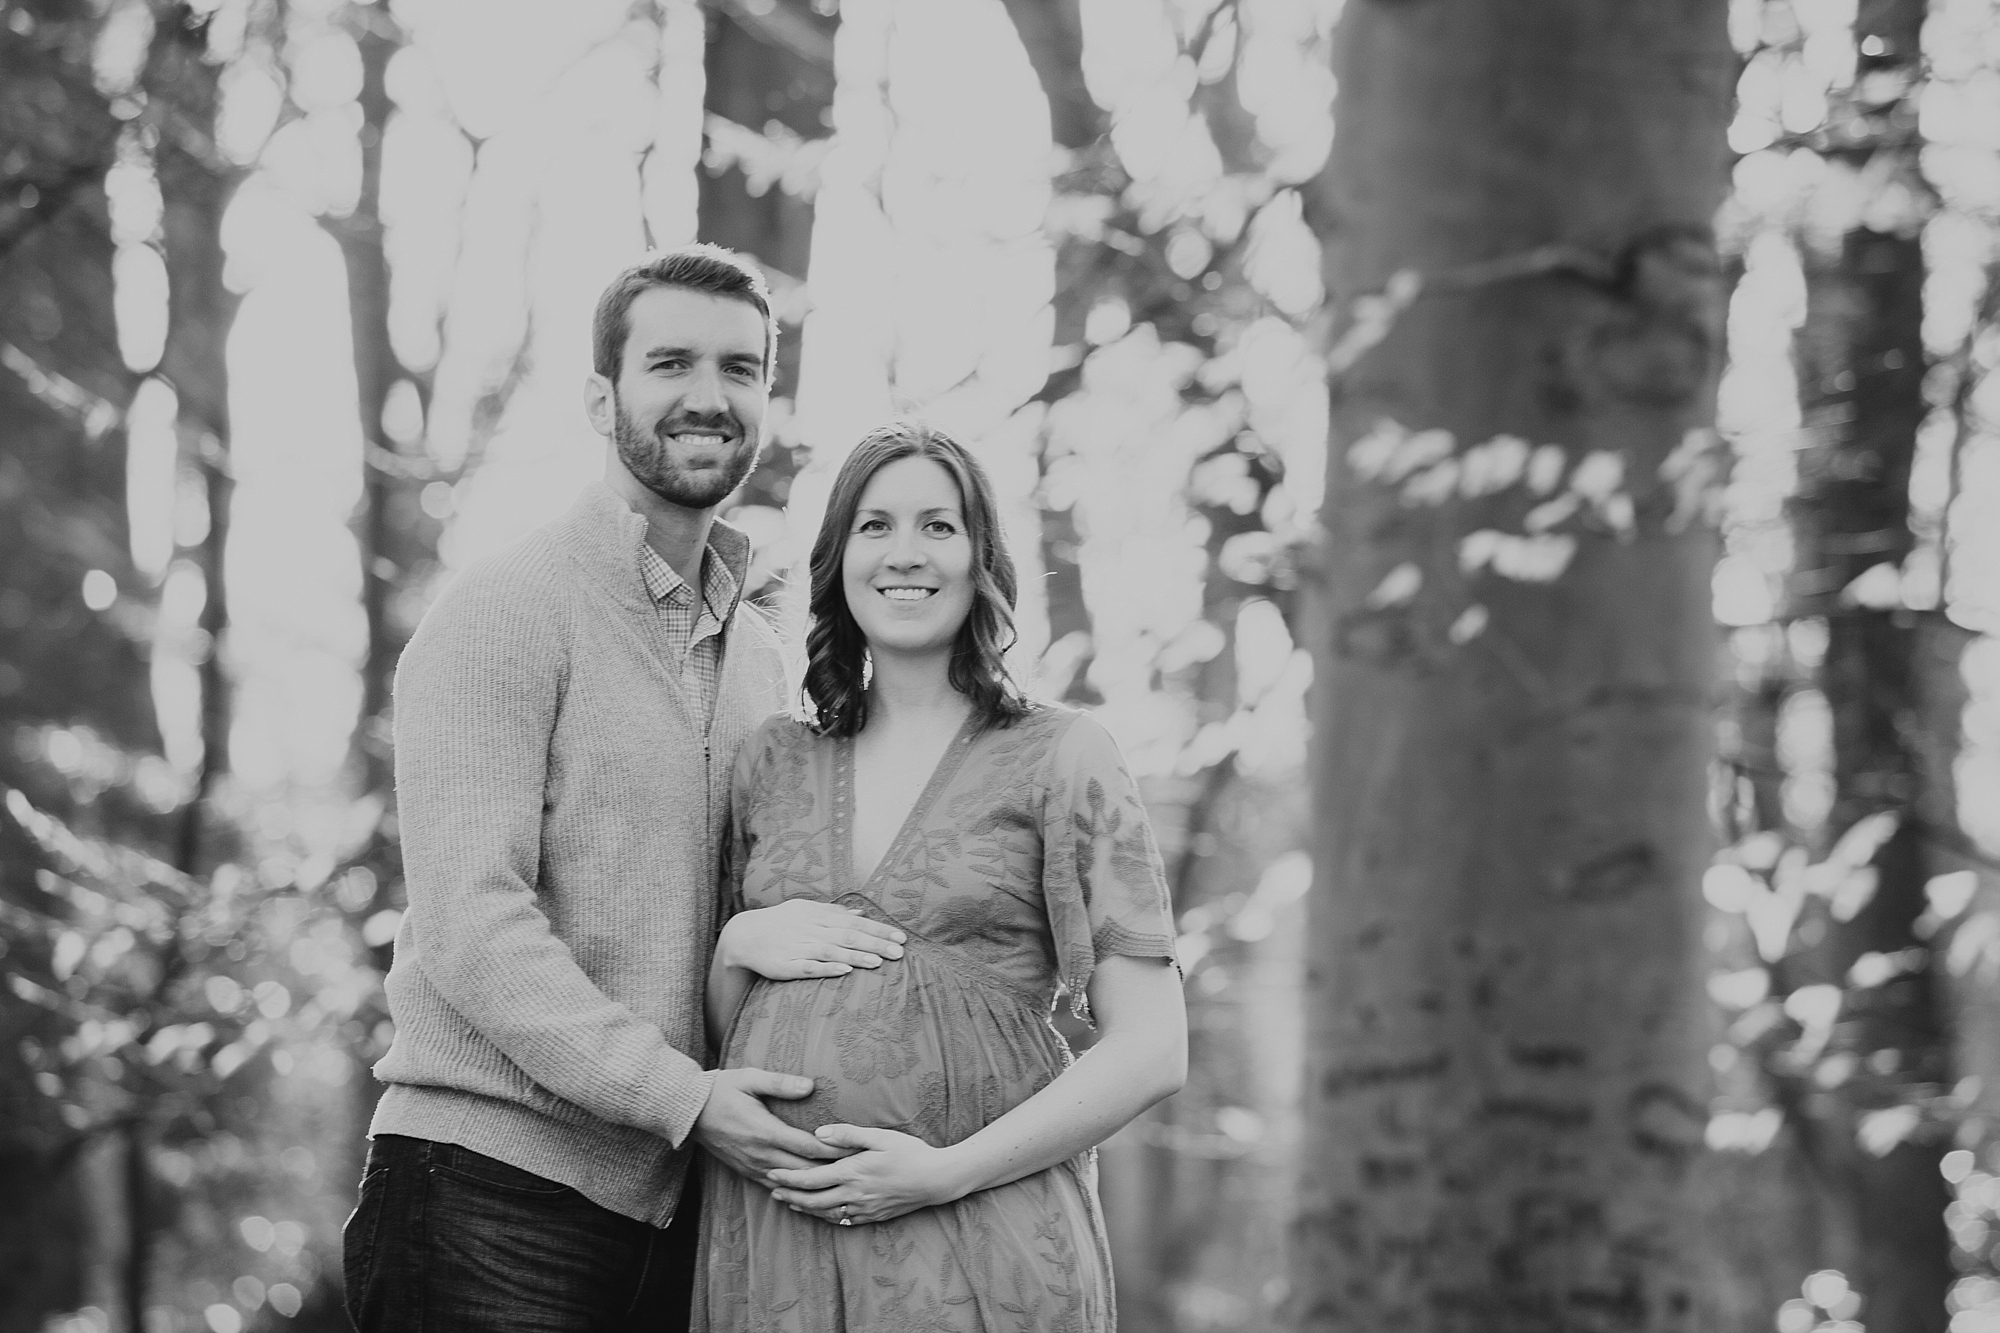 Joe_Mac_Creative_Maternity_Wedding_Engagements_Photography_Philadelphia_Valley_Forge__0033.jpg